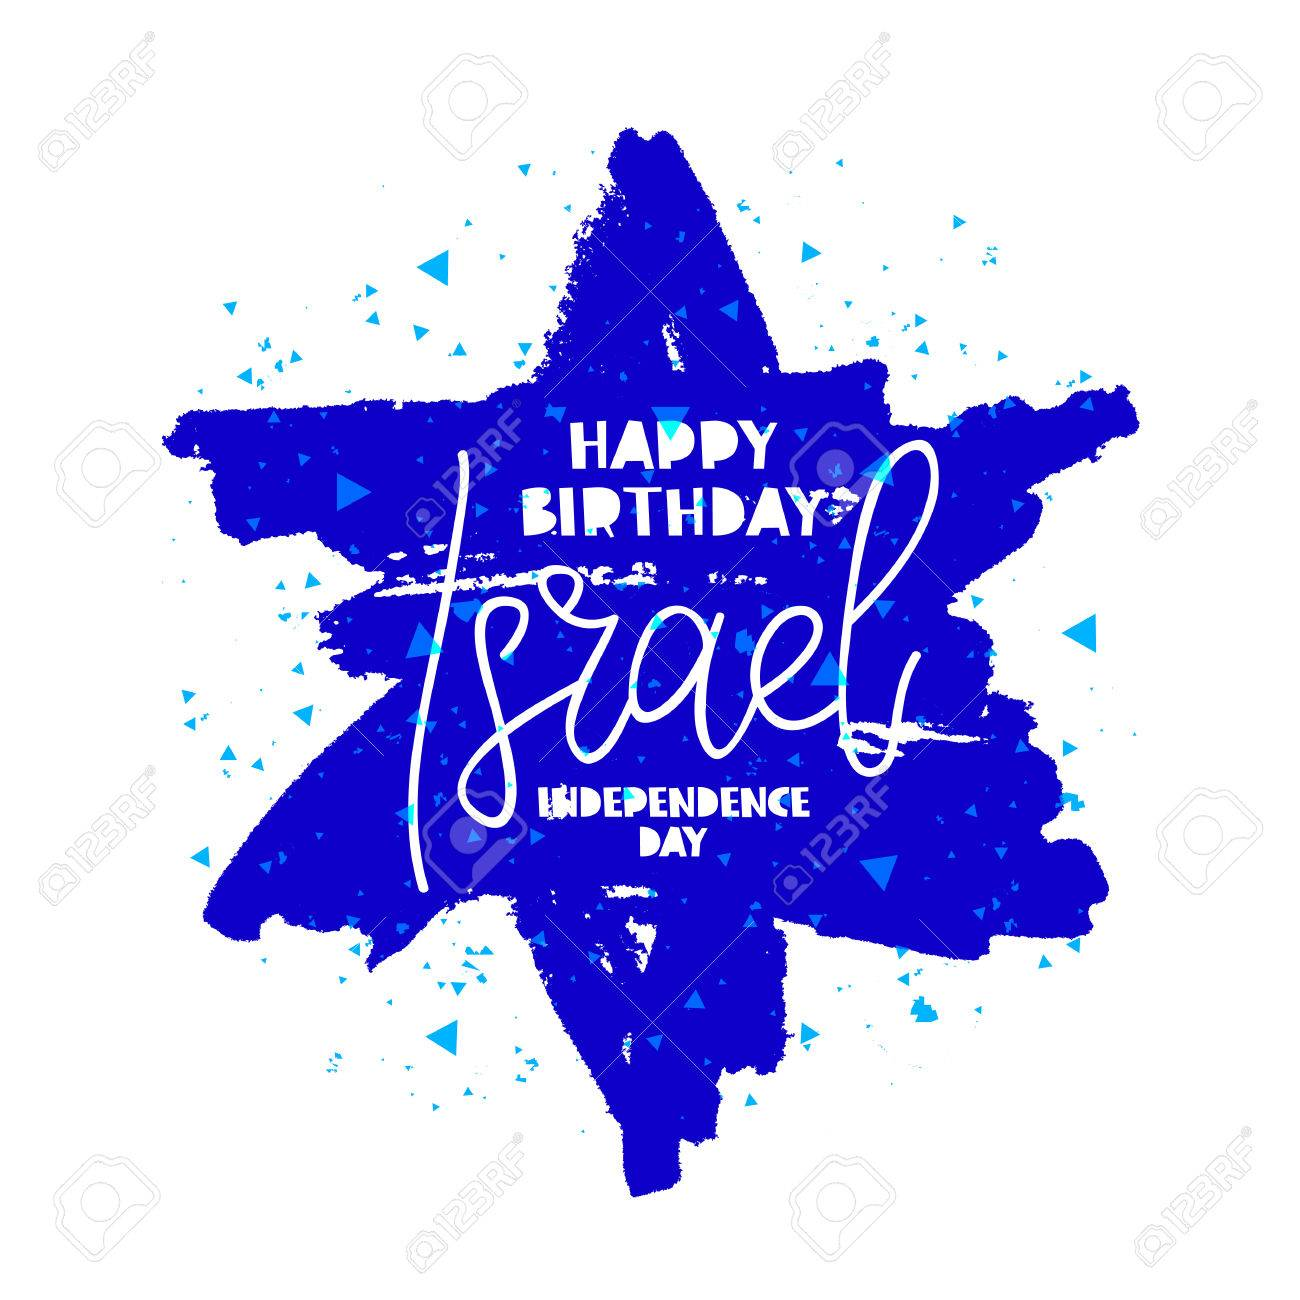 Happy Birthday Israel Independence Day Calligraphy And Lettering